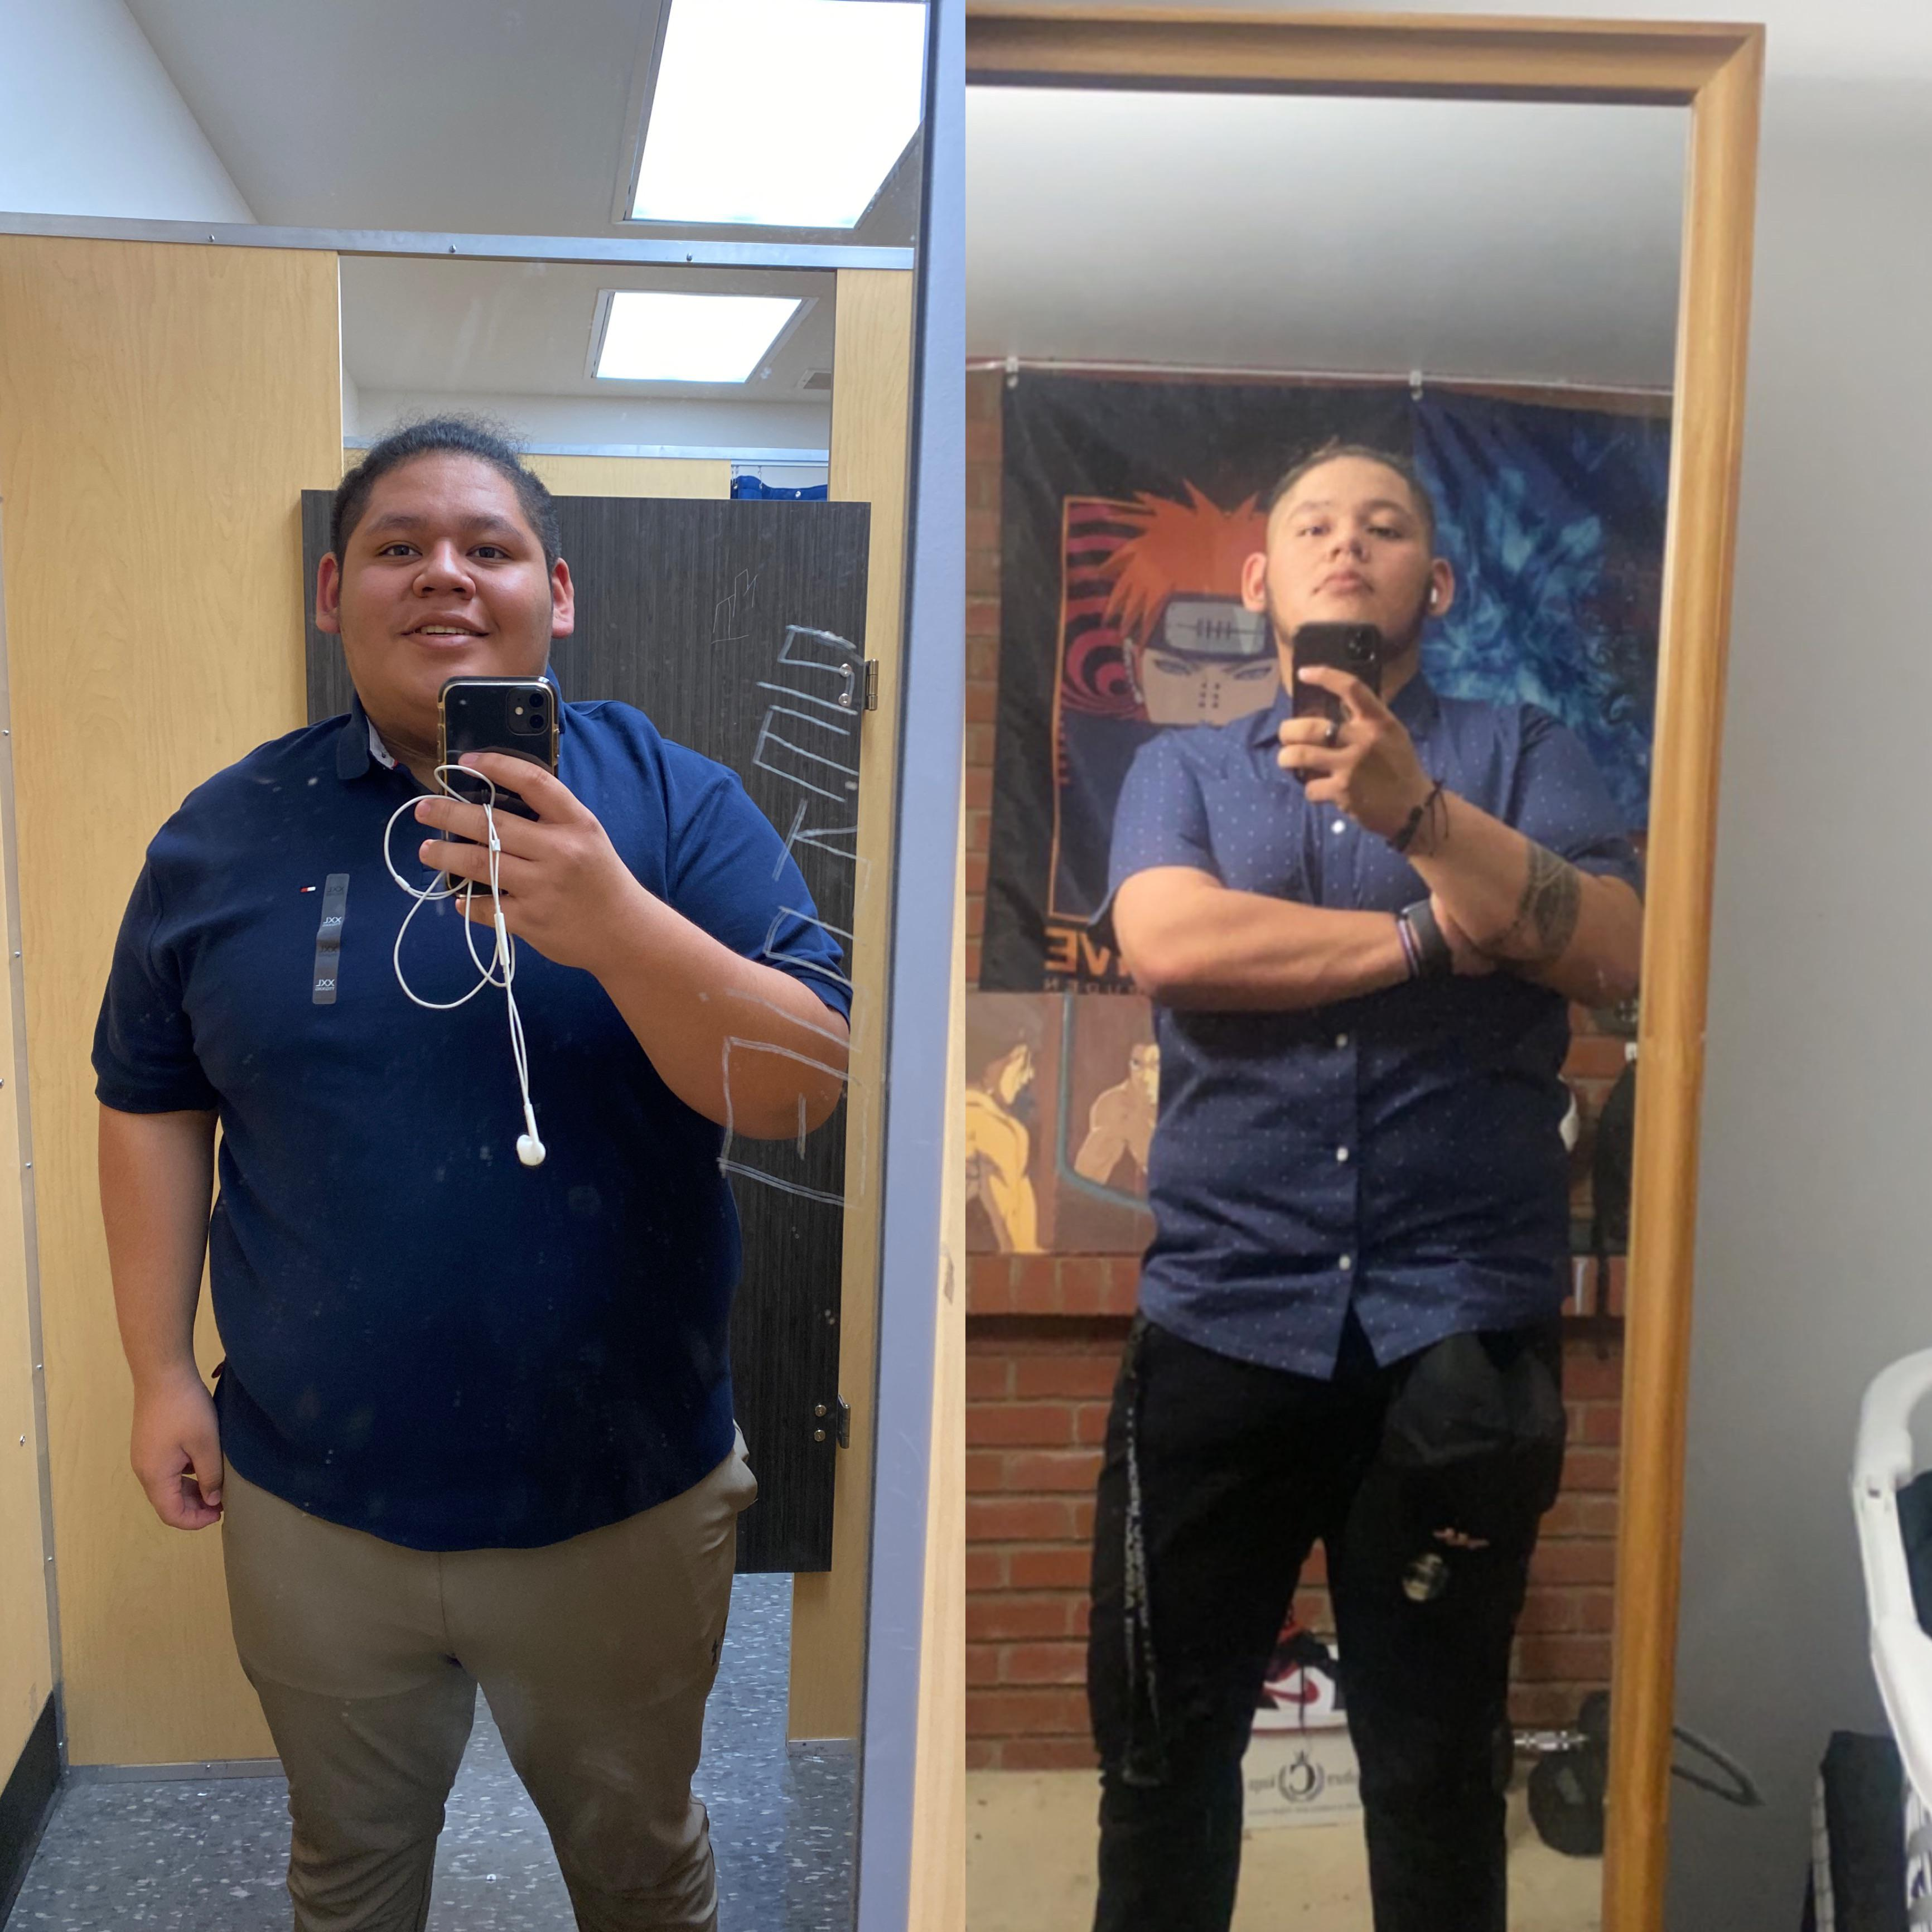 6 feet 2 Male 105 lbs Weight Loss Before and After 375 lbs to 270 lbs